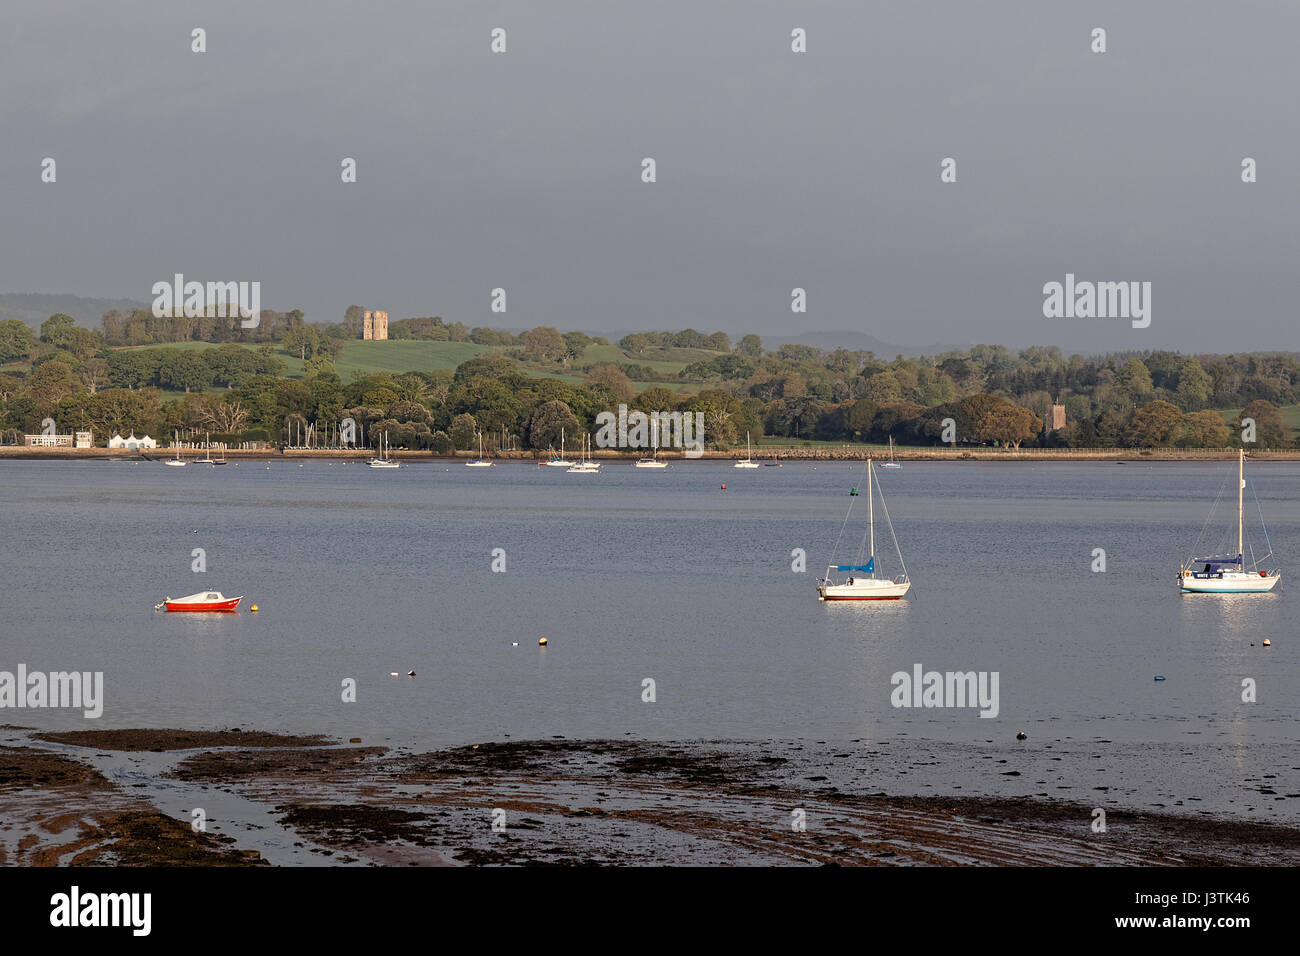 View across the River Exe estuary to Starcross Yacht Club, St Clements Church & Powderham Folly - Stock Image